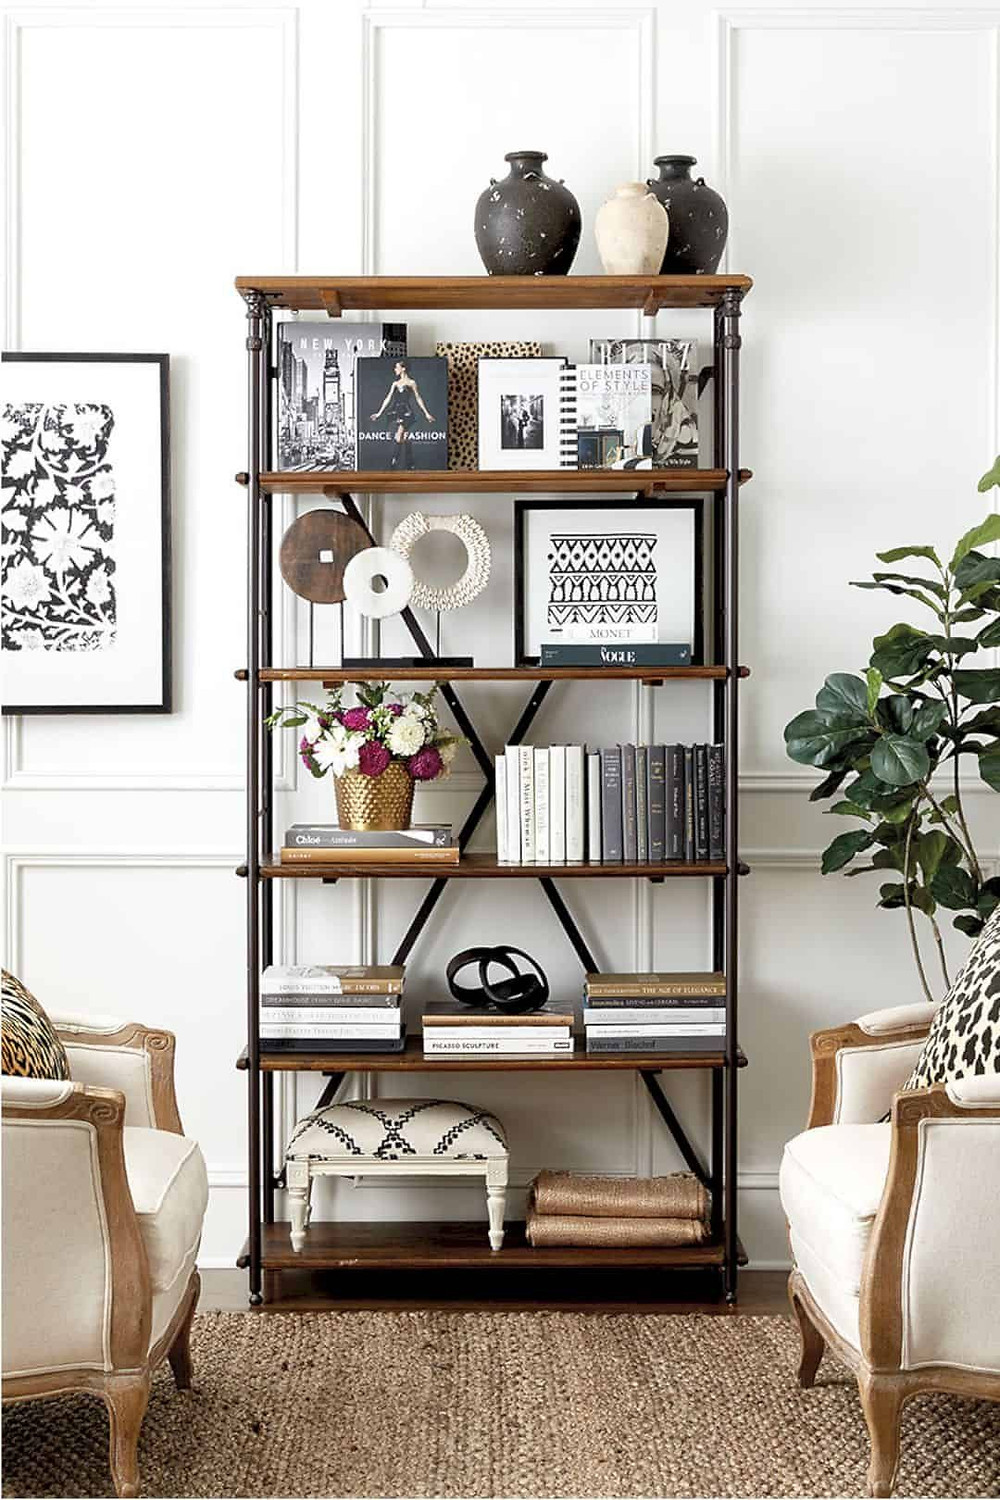 Bookshelf styling idea in a traditional style